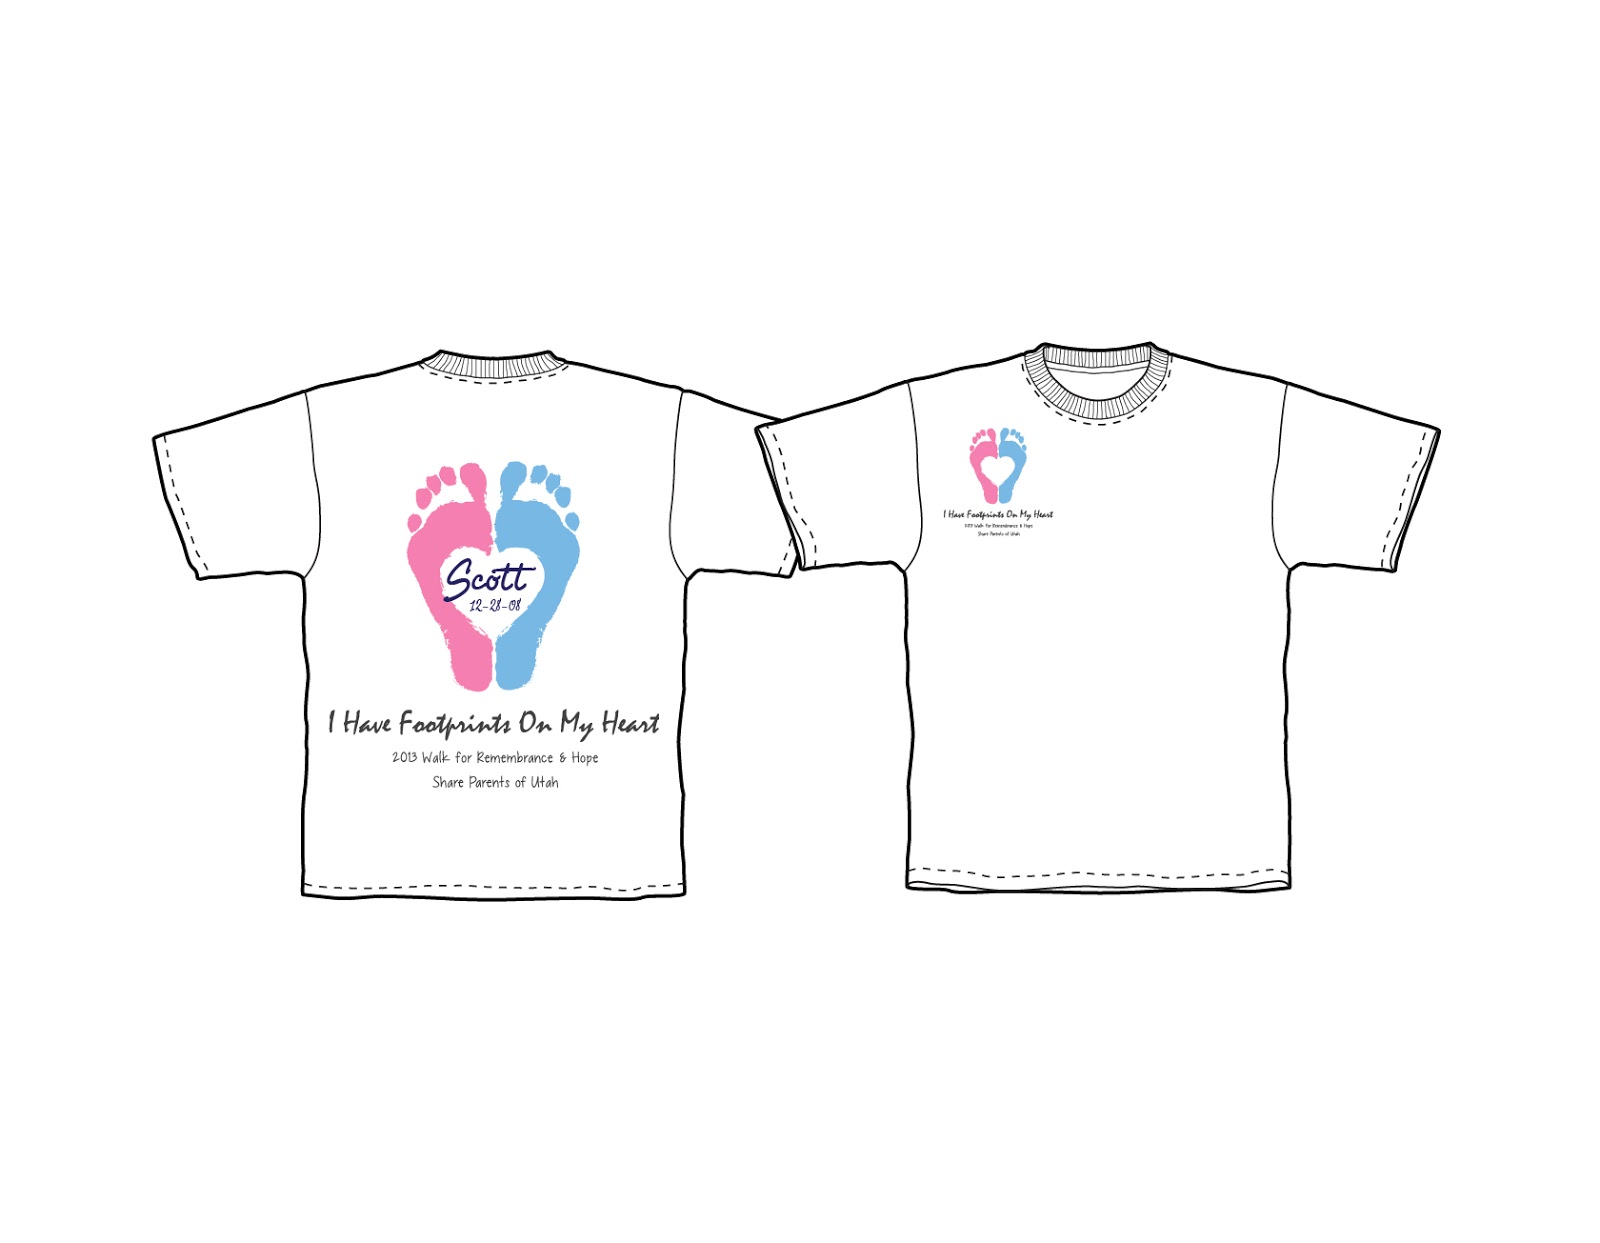 Shirt design utah - Here Are The Shirt Designs For The 2013 Walk The Name Written Inside The Footprint Is An Example Of What You Can Write On Your Shirt With A Fabric Marker